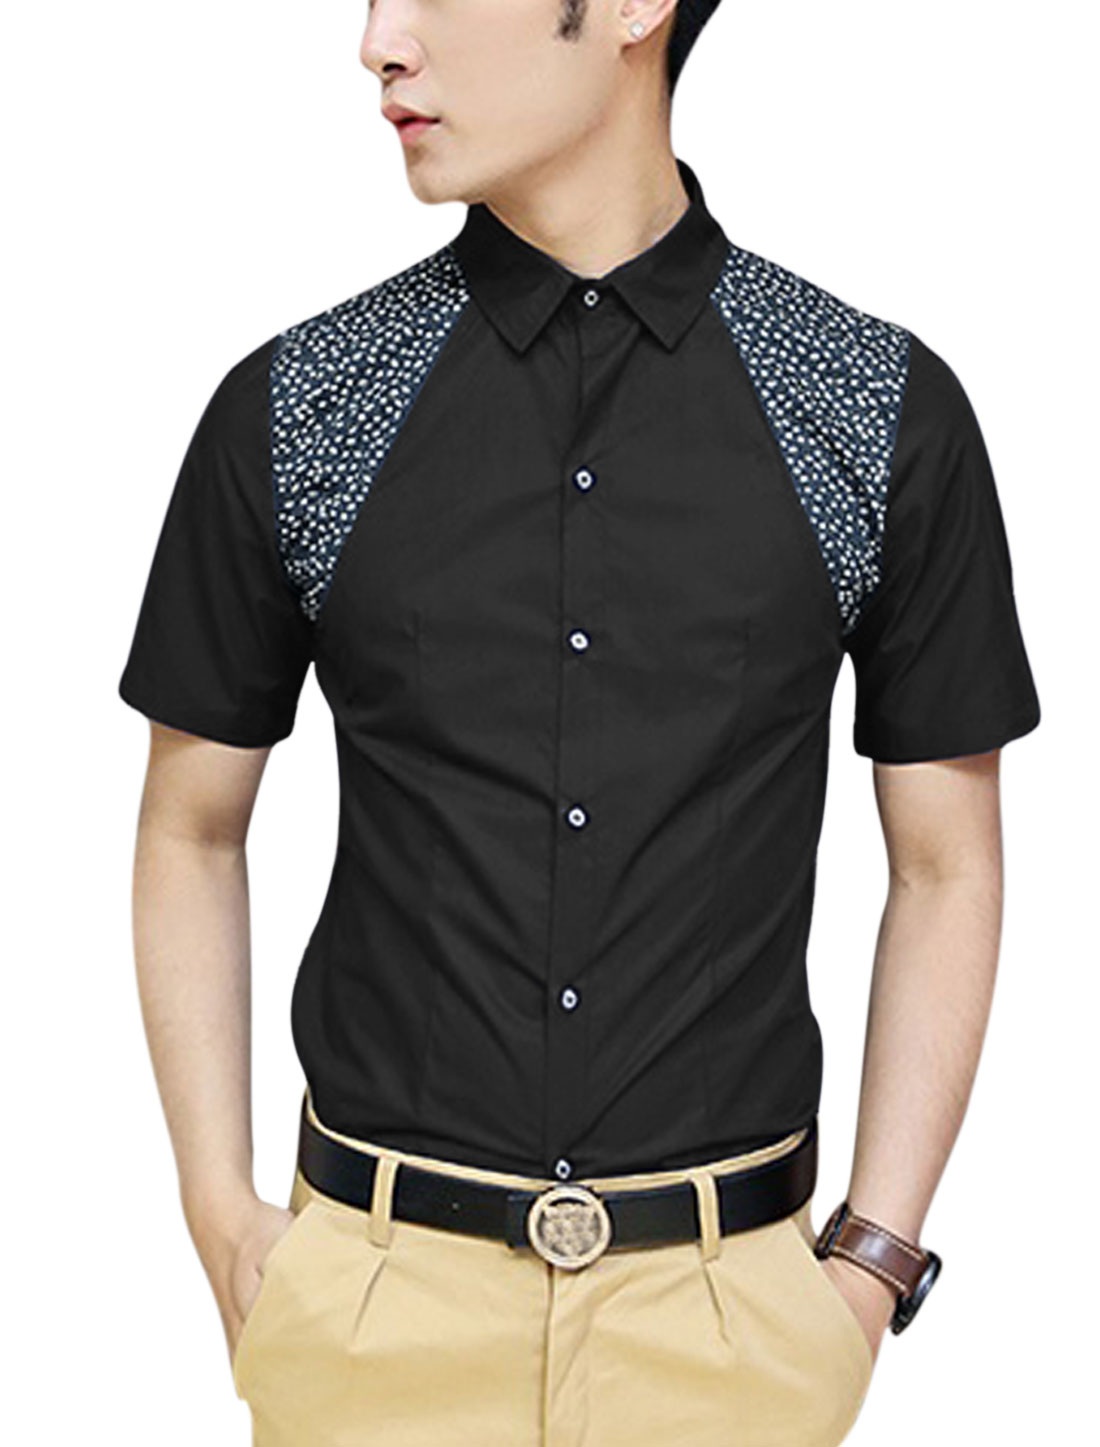 Man Floral Print Detail Point Collar Short Sleeve Casual Shirt Black M